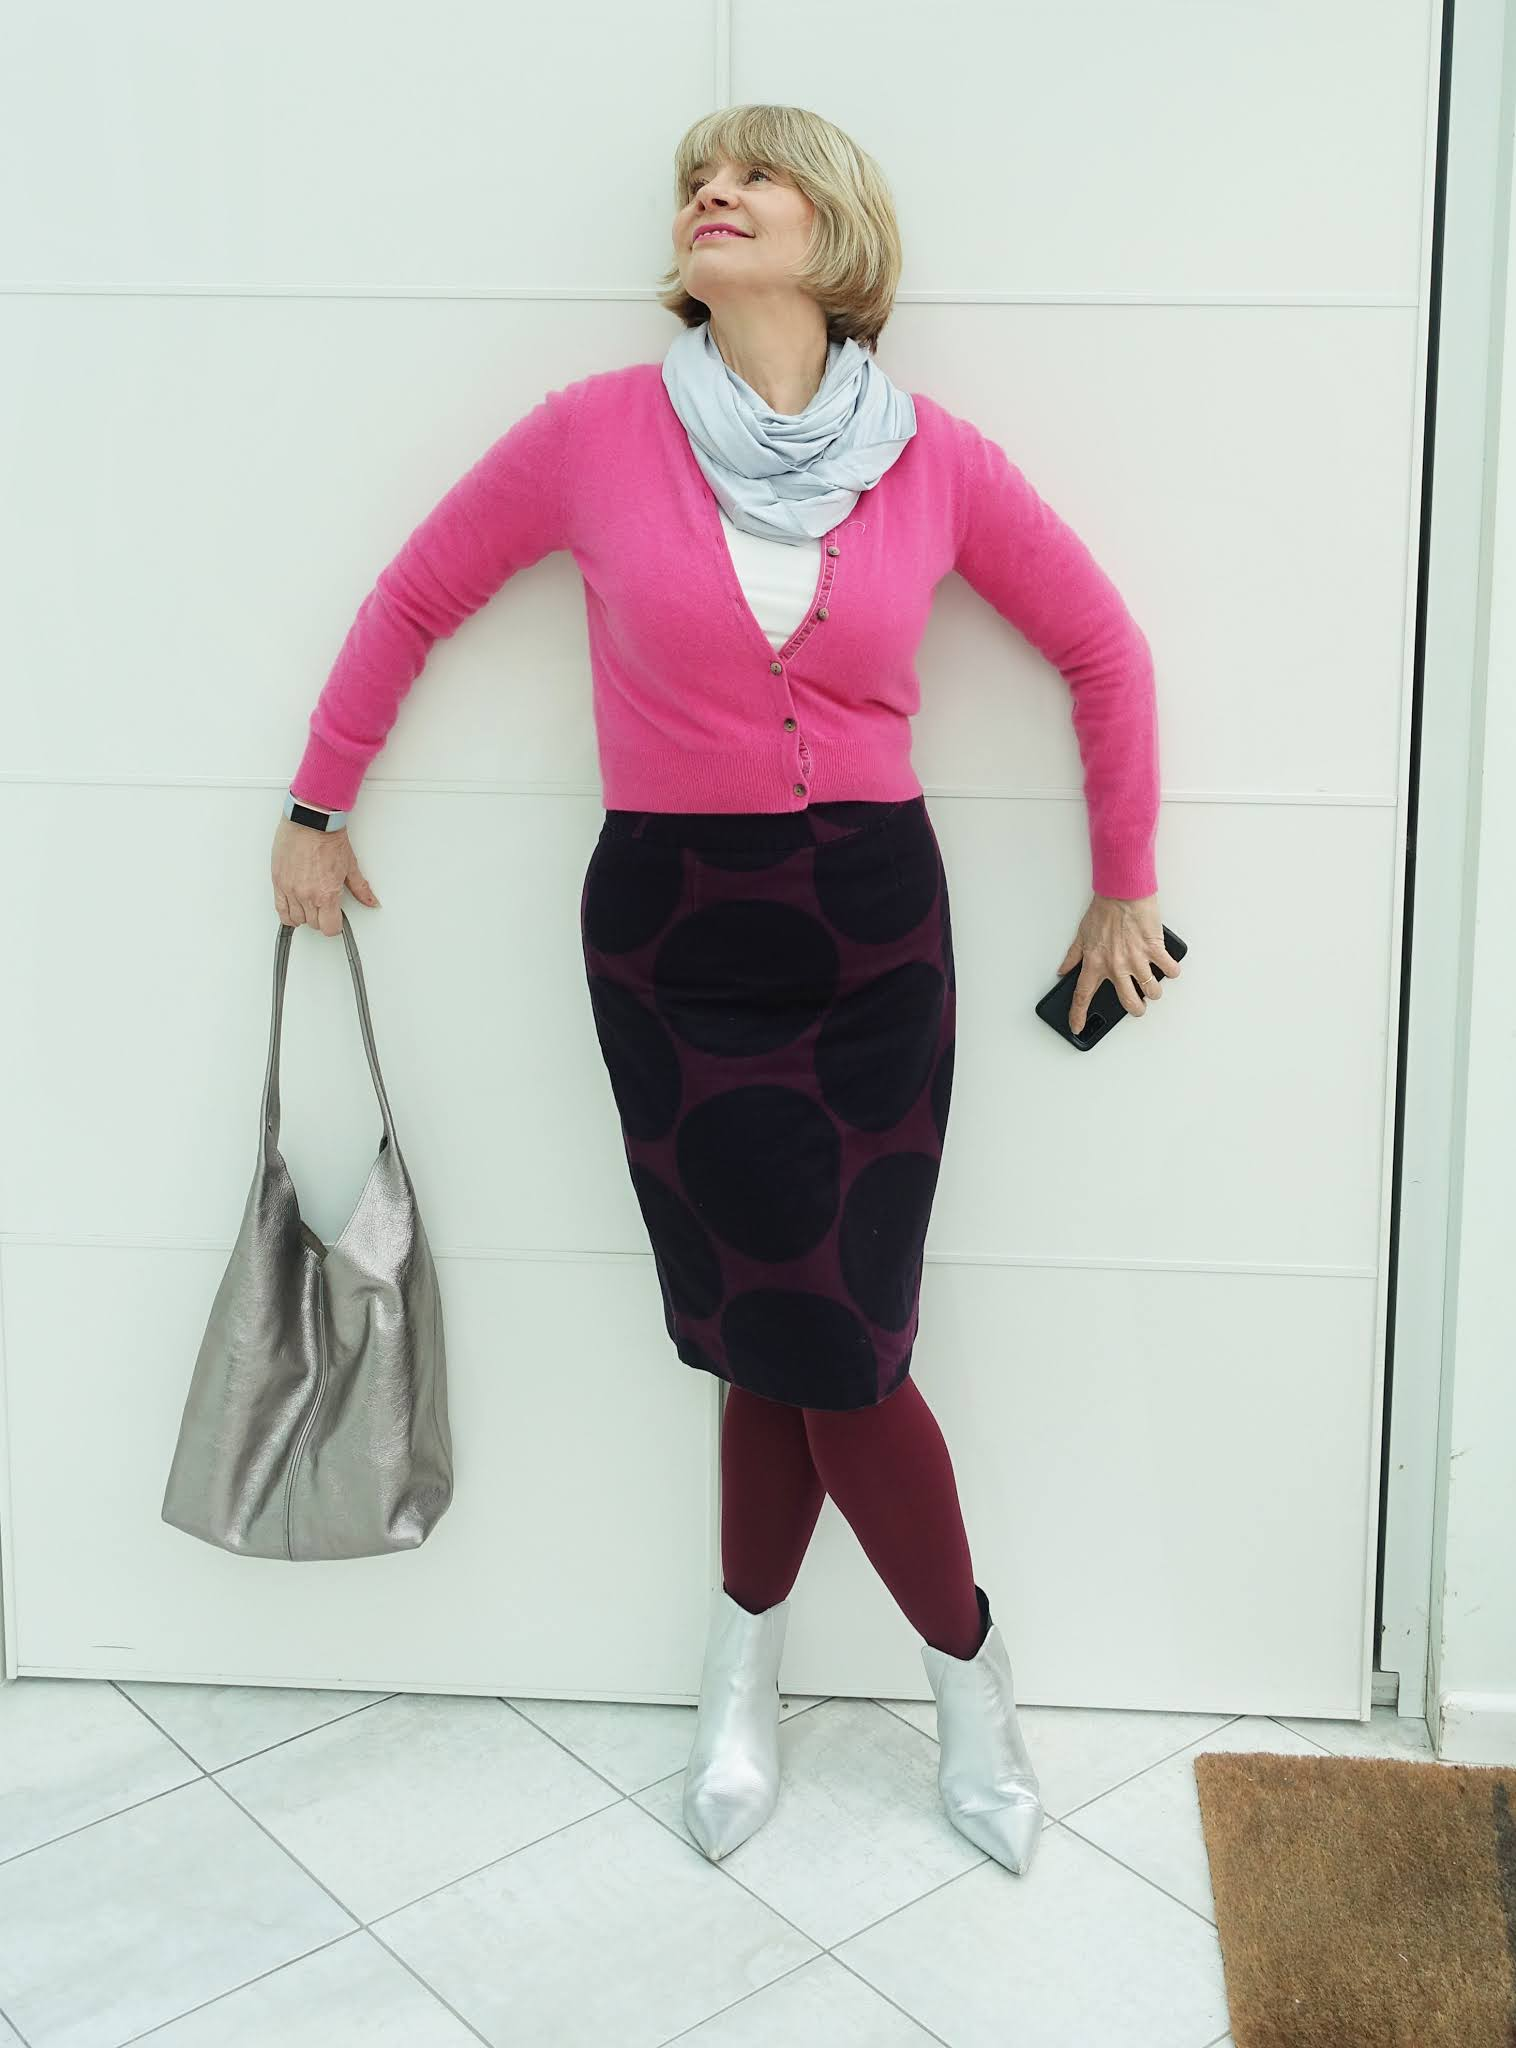 Gail Hanlon from Is This Mutton is reunited with an old Boden patterned knee length skirt and styles it two ways